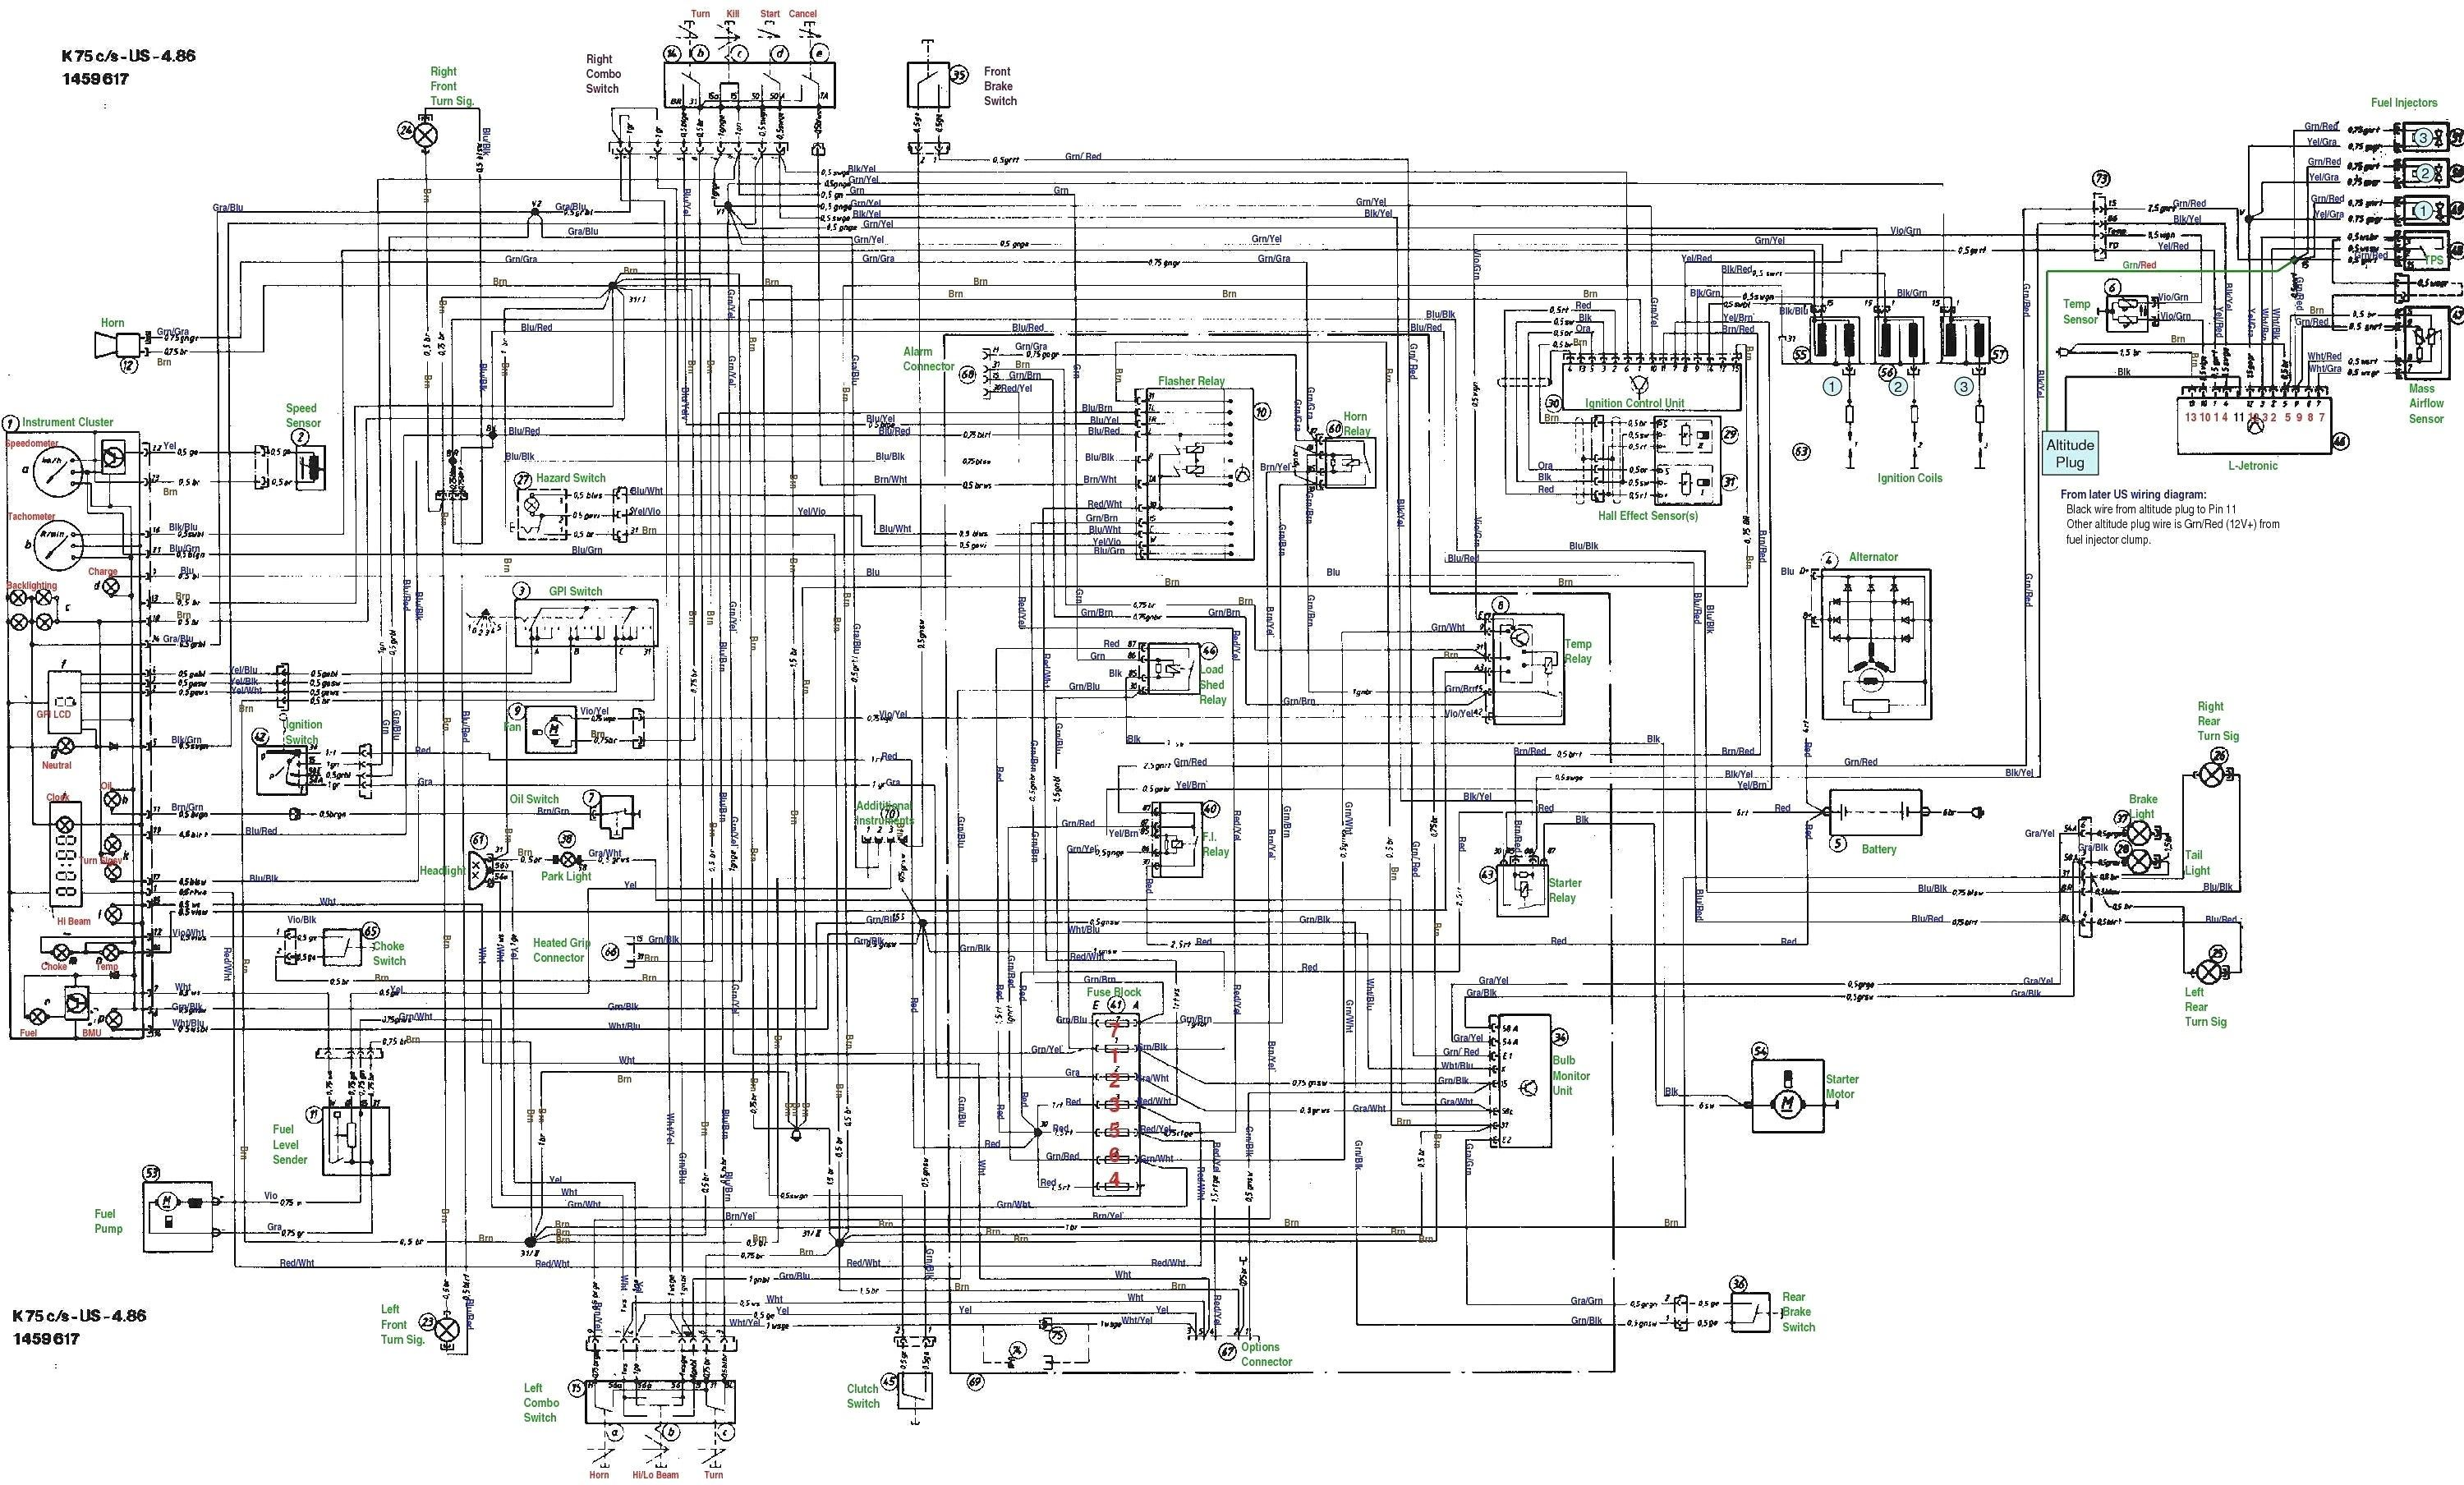 Bmw E46 Ignition Switch Wiring Diagram Diagram Diagramtemplate Diagramsample E36 M3